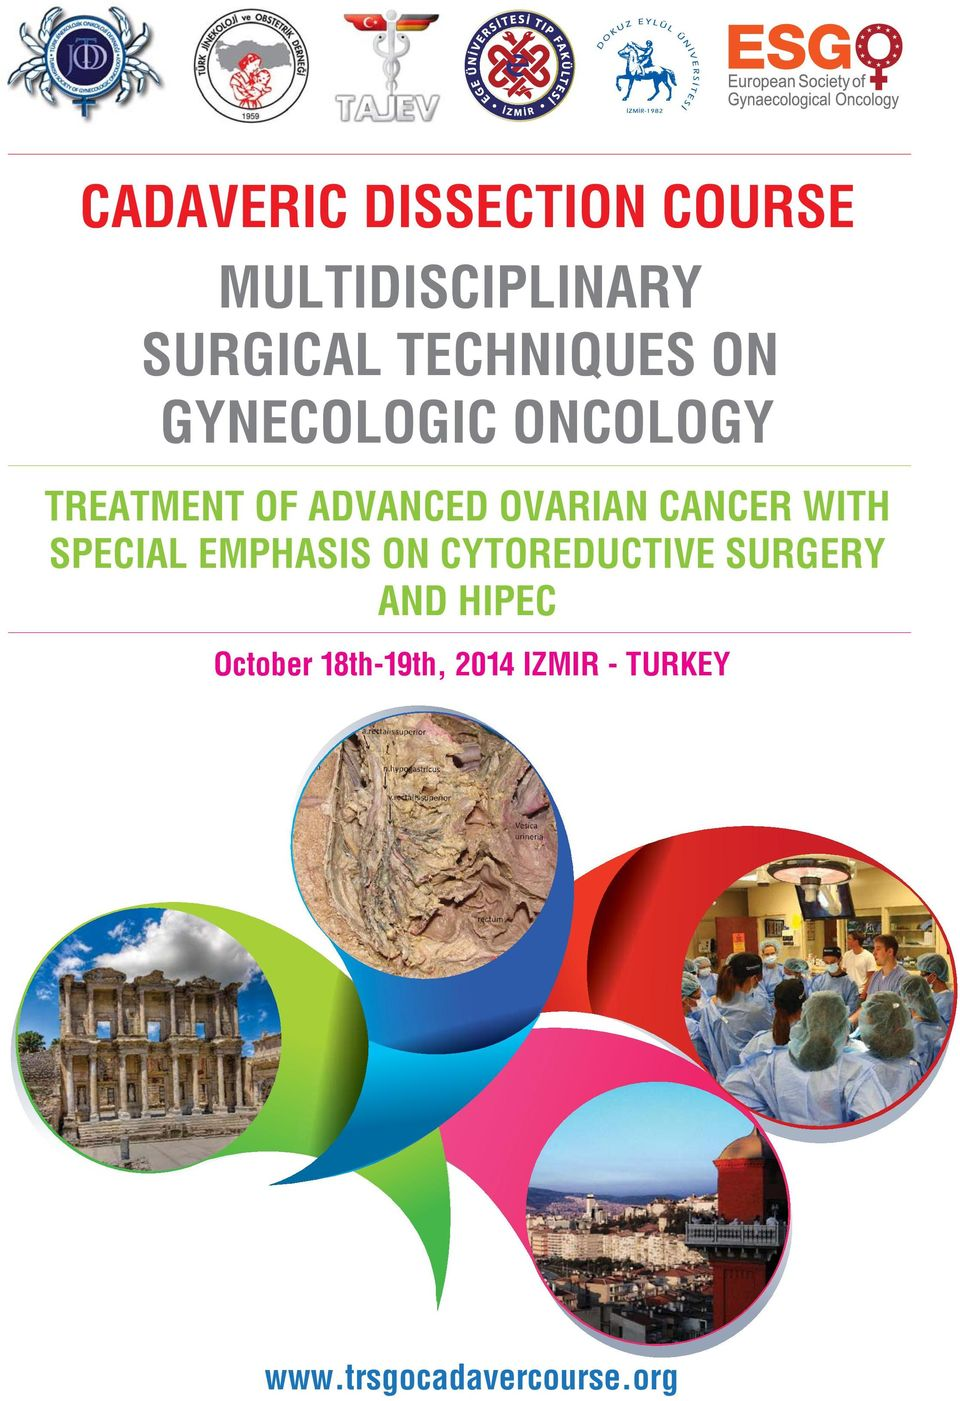 OVARIAN CANCER WITH SPECIAL EMPHASIS ON CYTOREDUCTIVE SURGERY